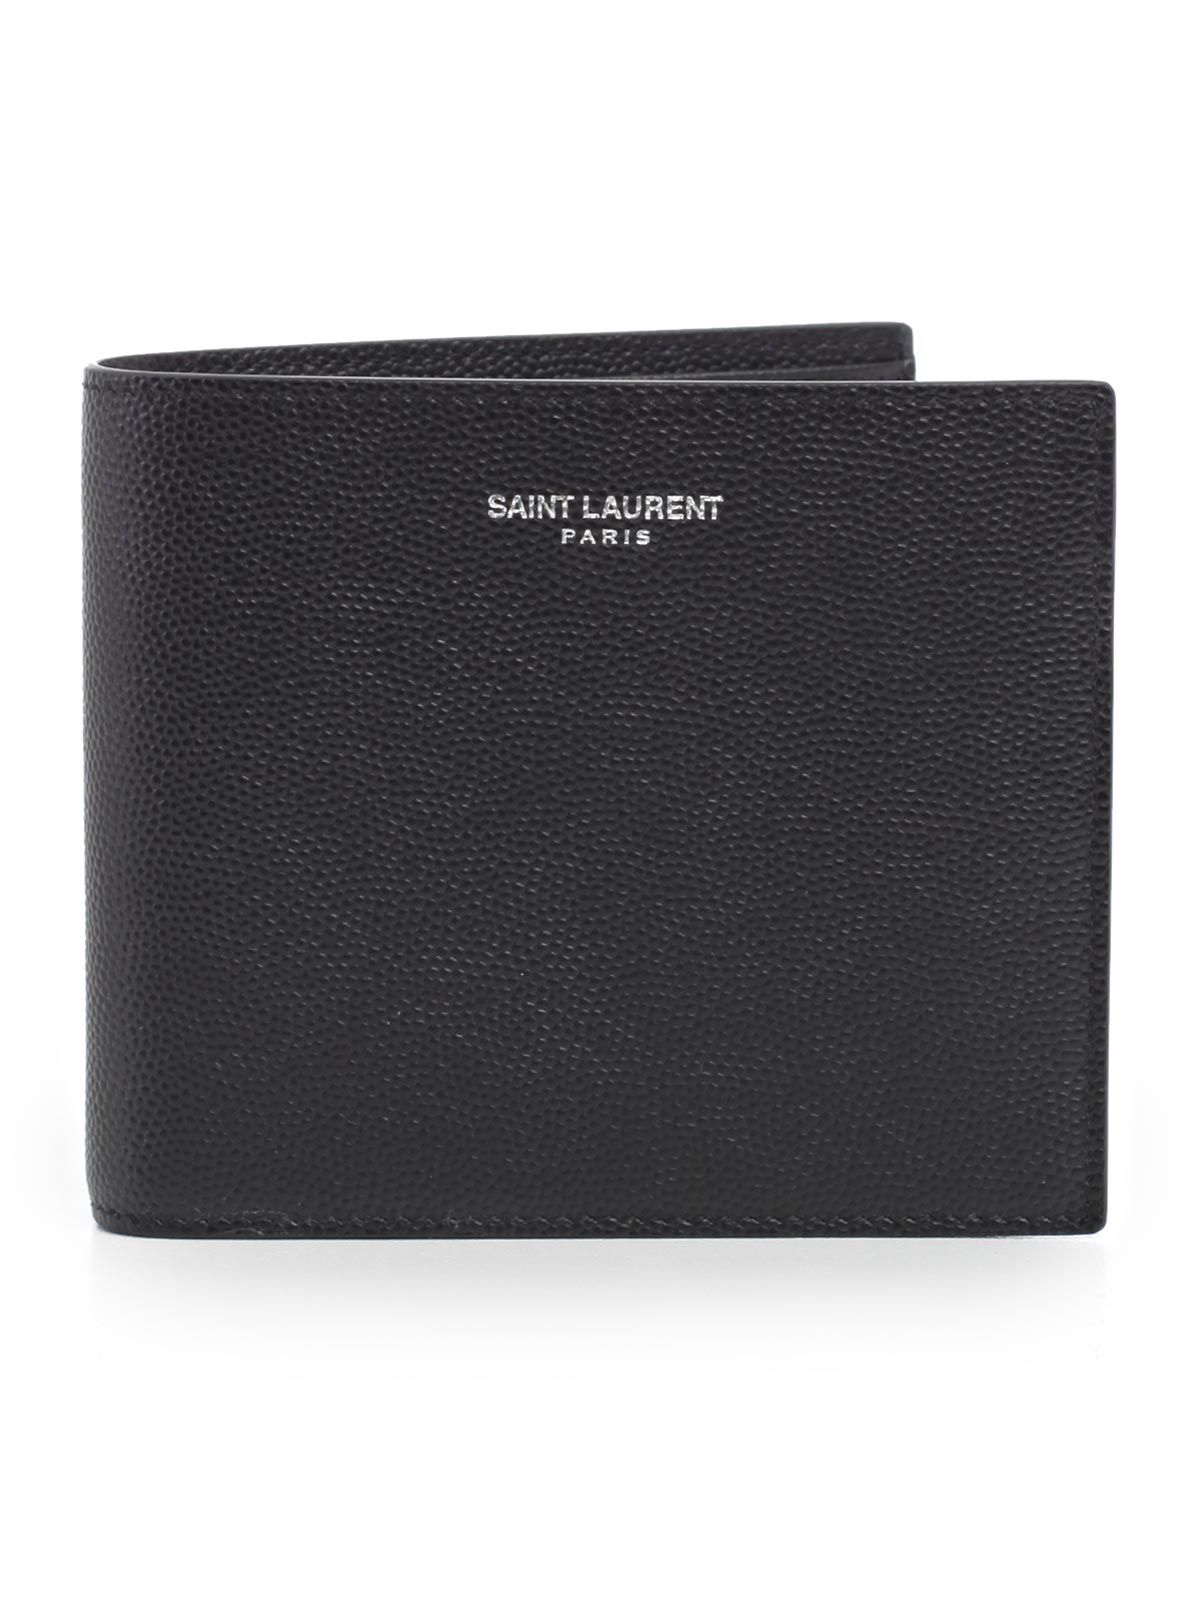 Picture of SAINT LAURENT WALLET P.FOGLI C/P.MONETE